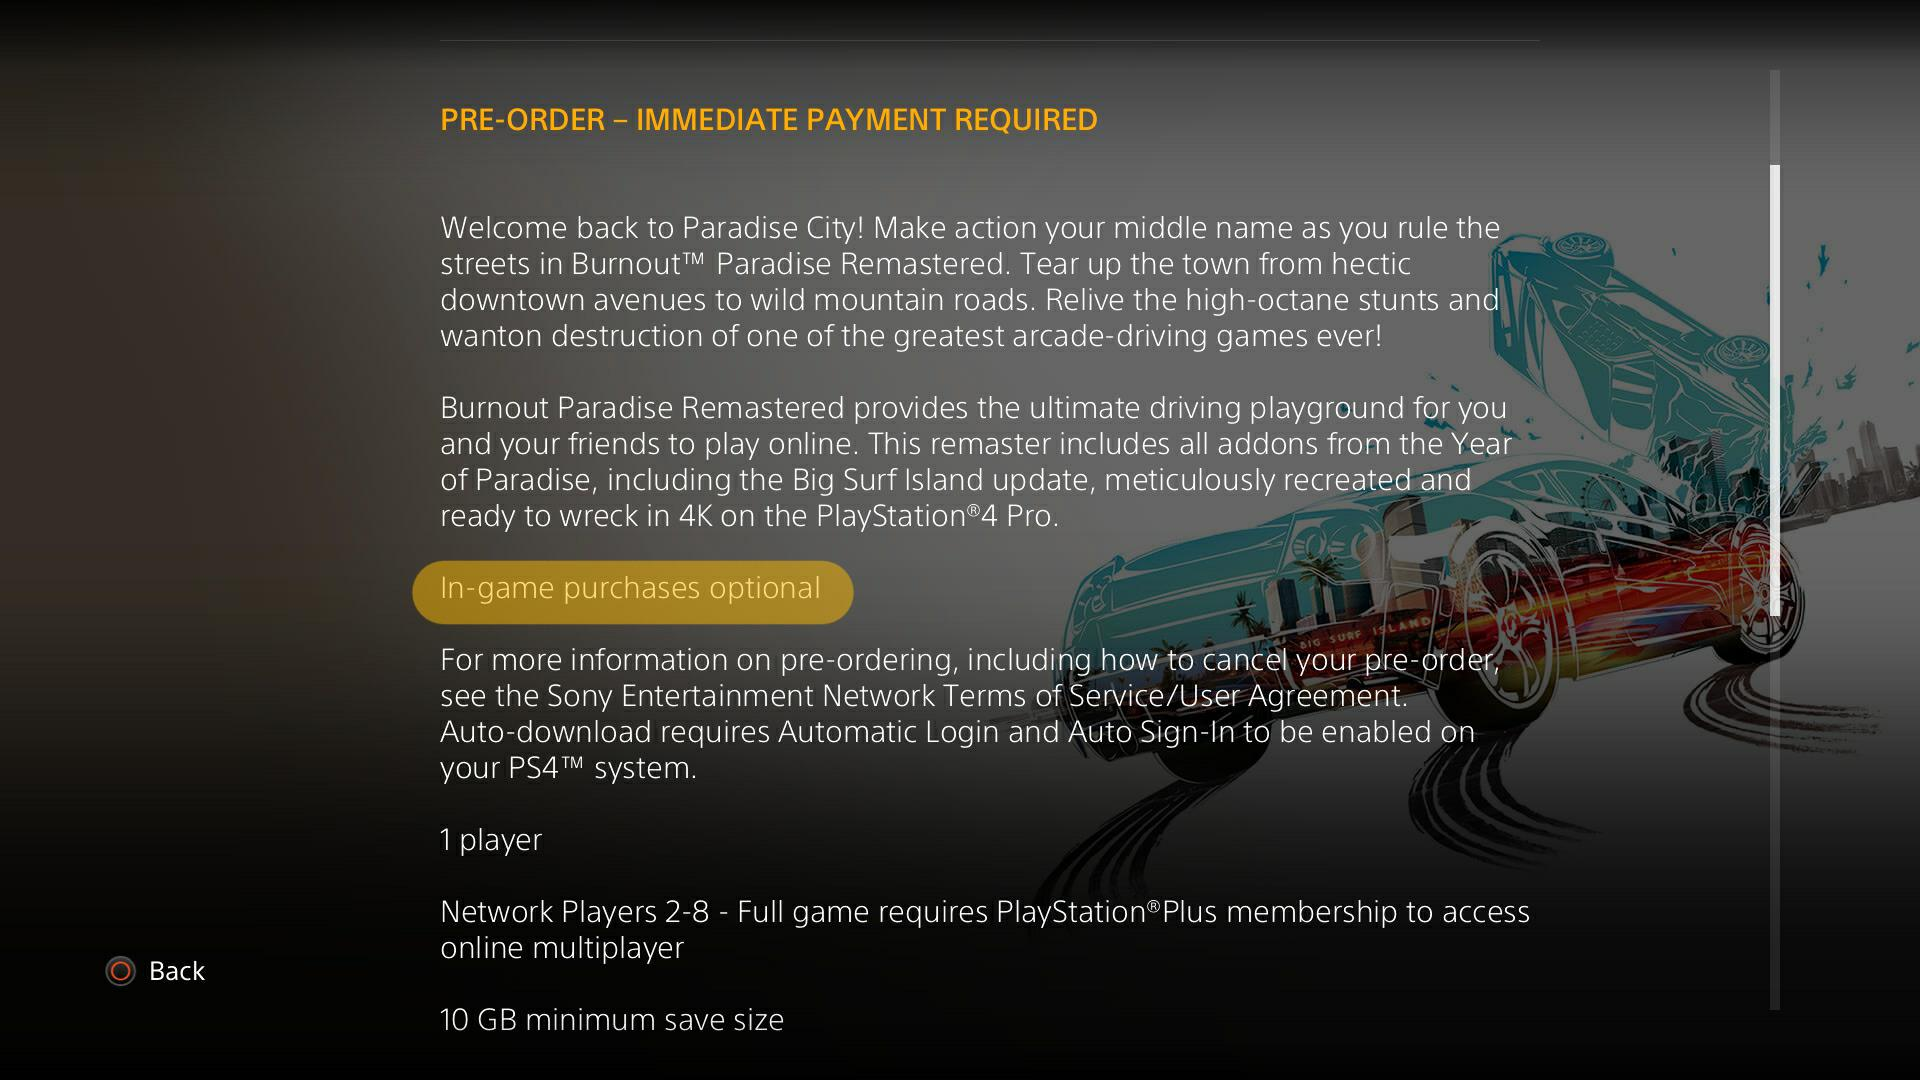 Dc5m United States Software In English Created At 2018 02 21 1803 Link Turns Every Power Outlet Into Walltowall Network Zdnet All Of Burnout Paradise Remastereds Content Will Be Included The Package With No Additional Game Purchases A Few Hours After Announcing